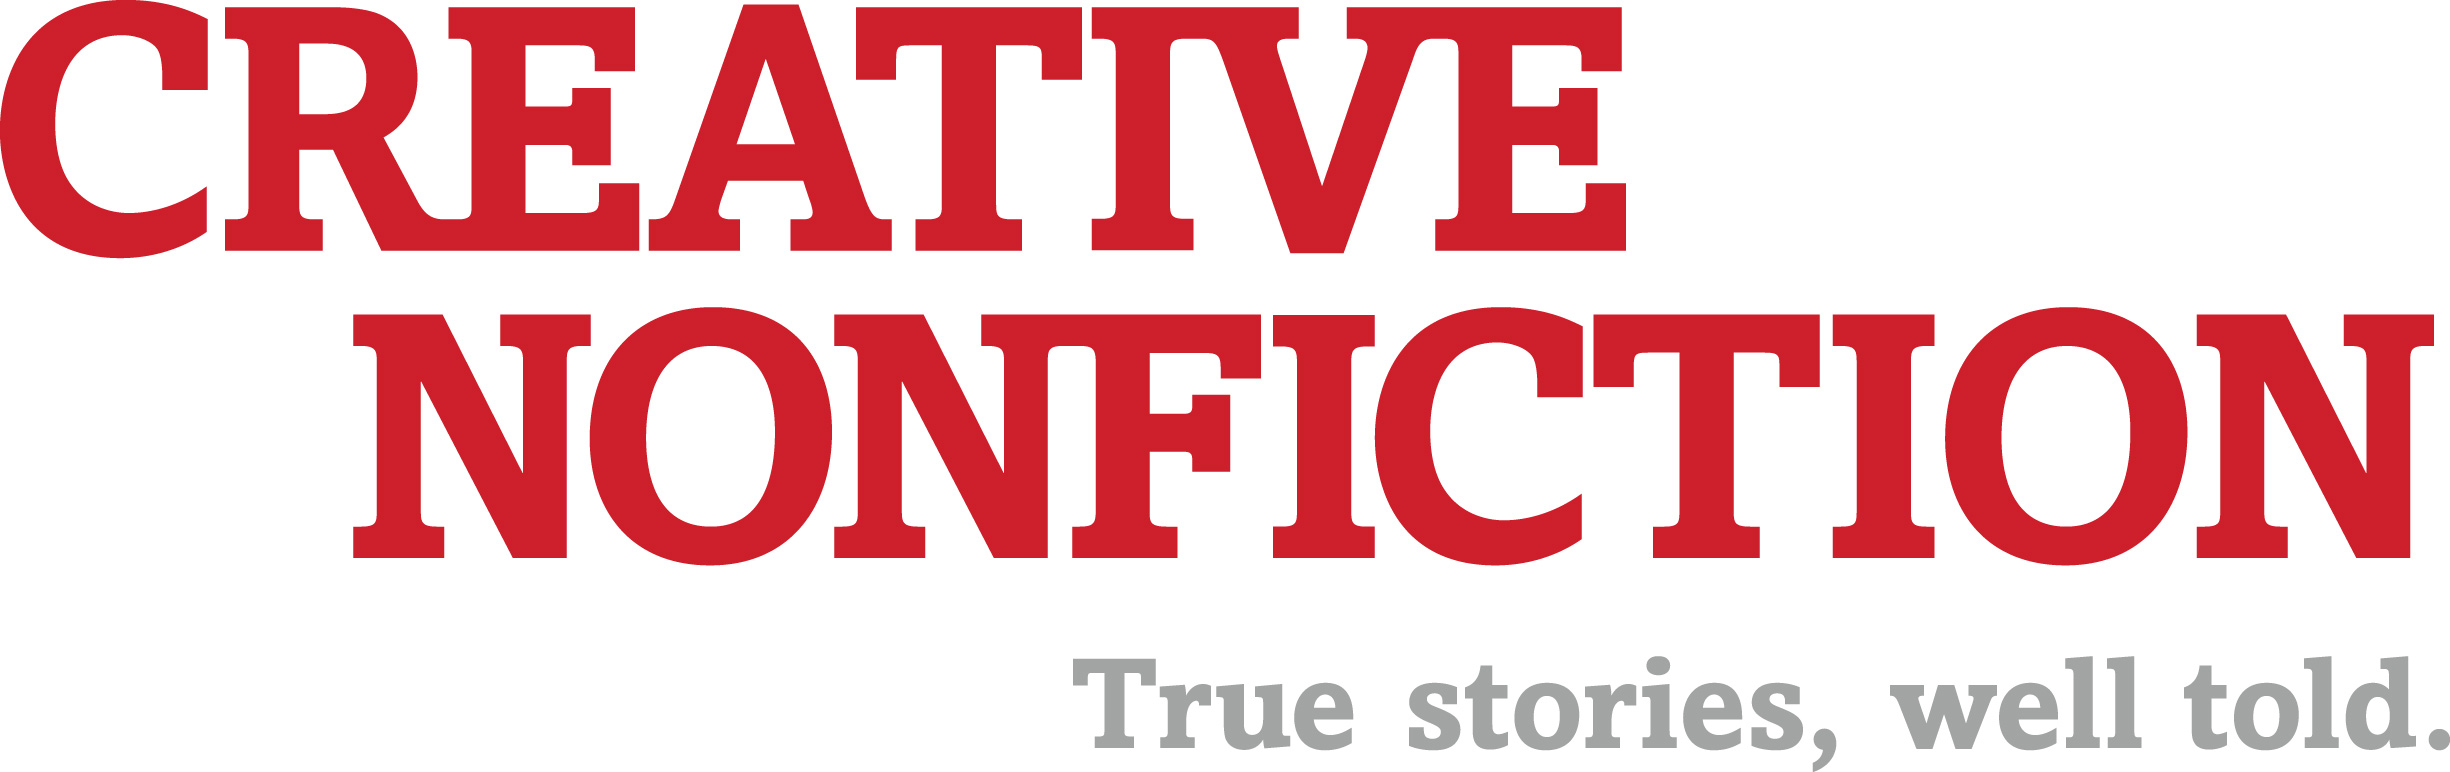 creative nonfiction writing conferences